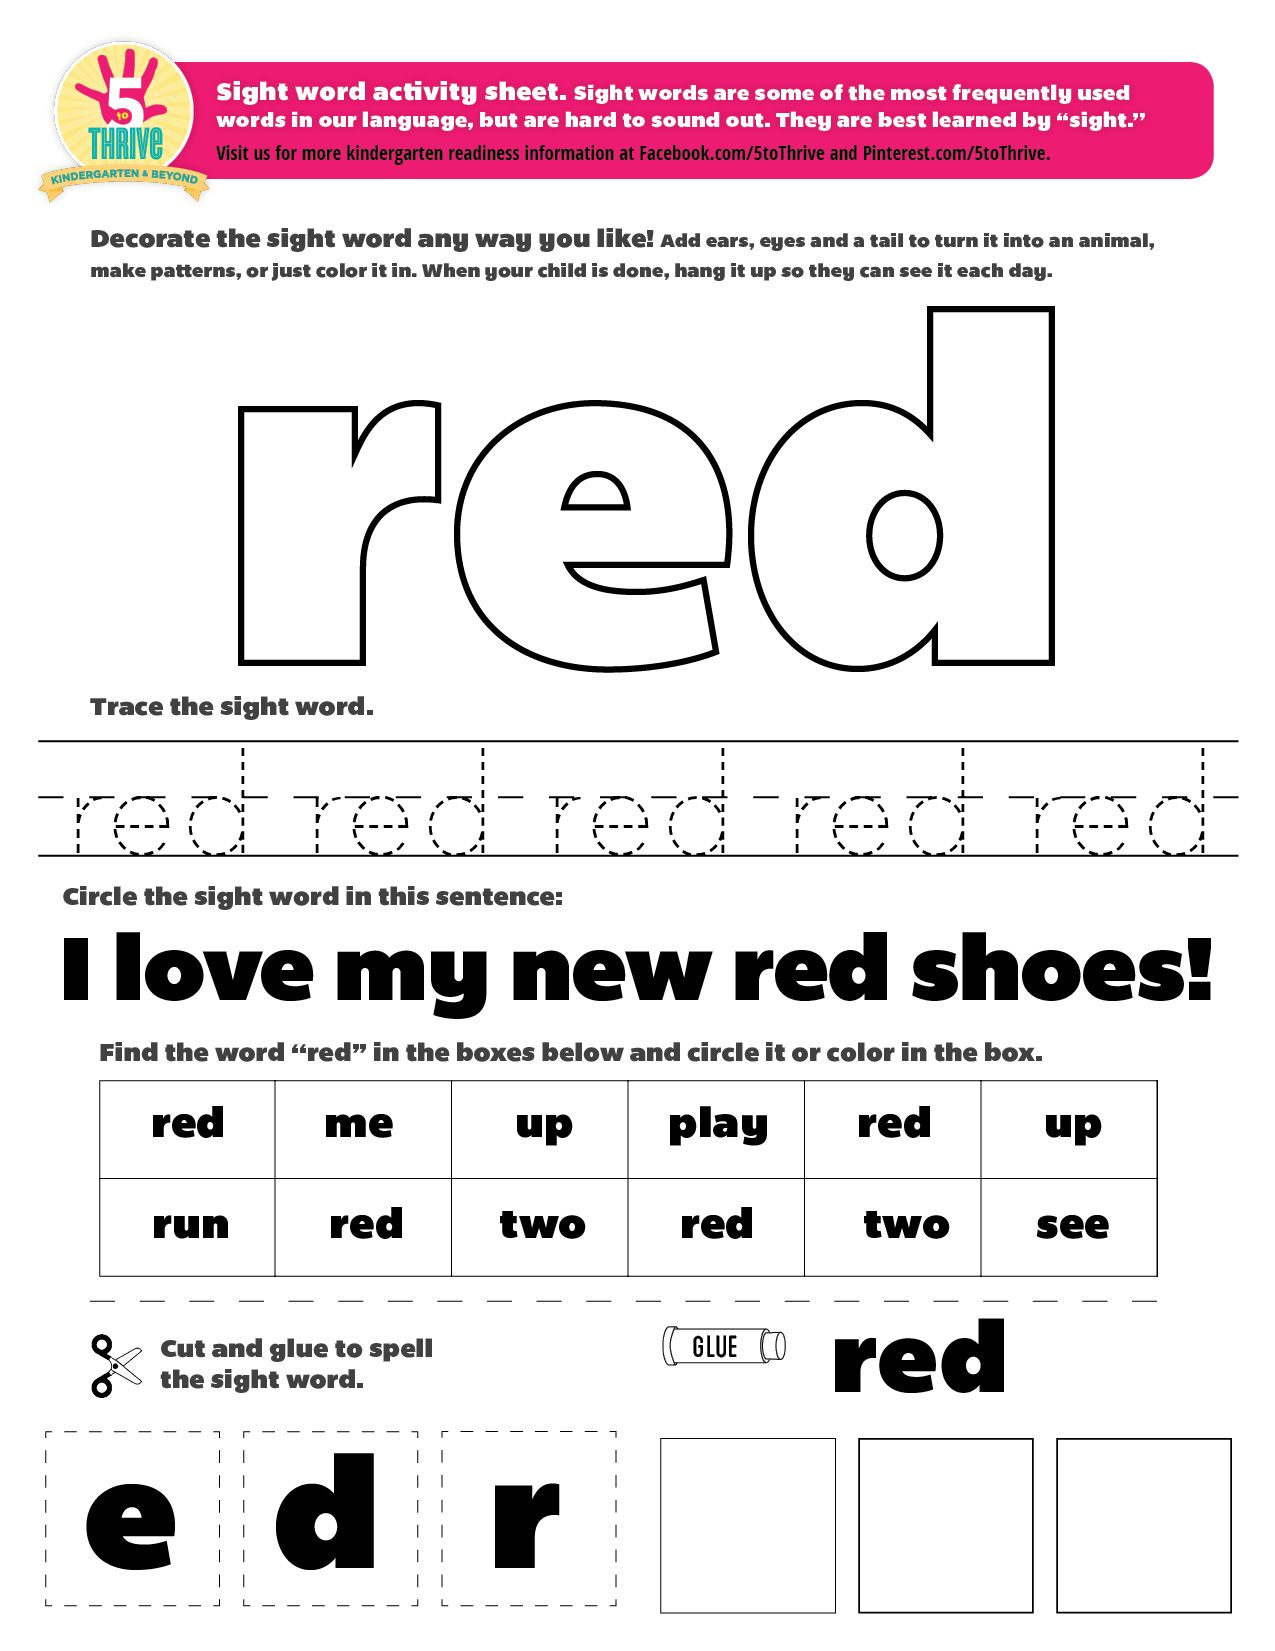 The Sight Word This Week Is Red Sight Words Are Some Of The Most Frequently Used Words In Our